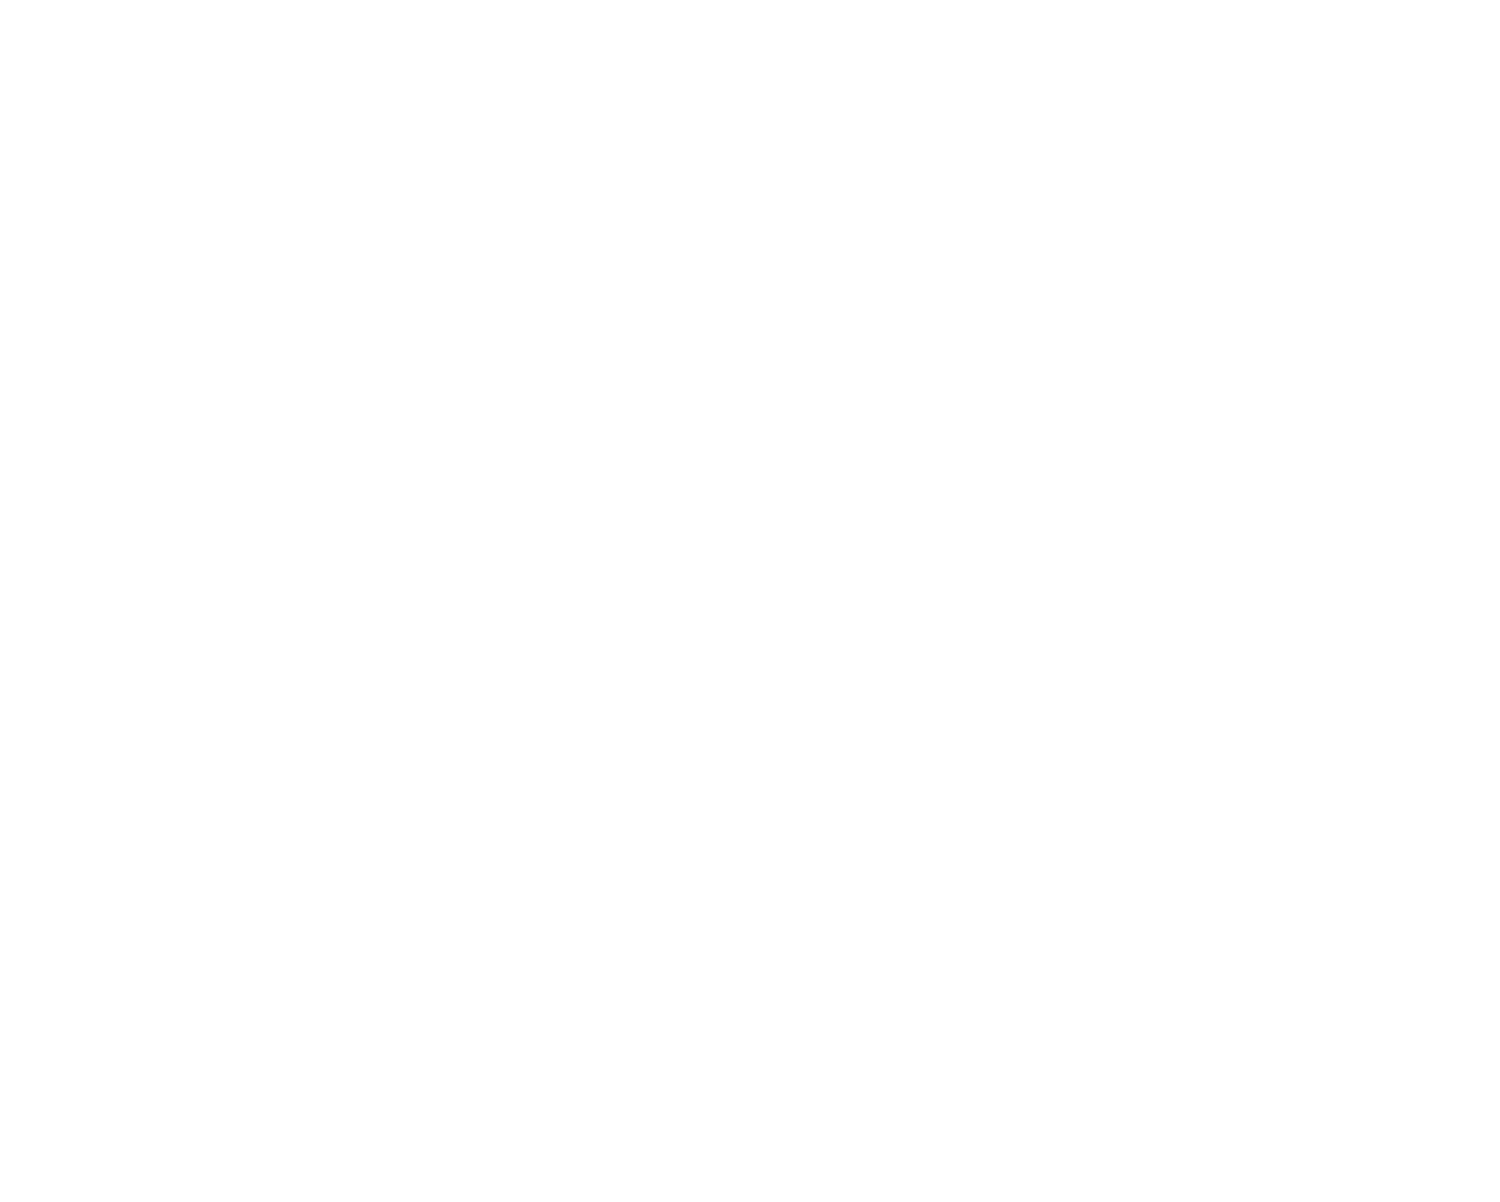 LyricalValue